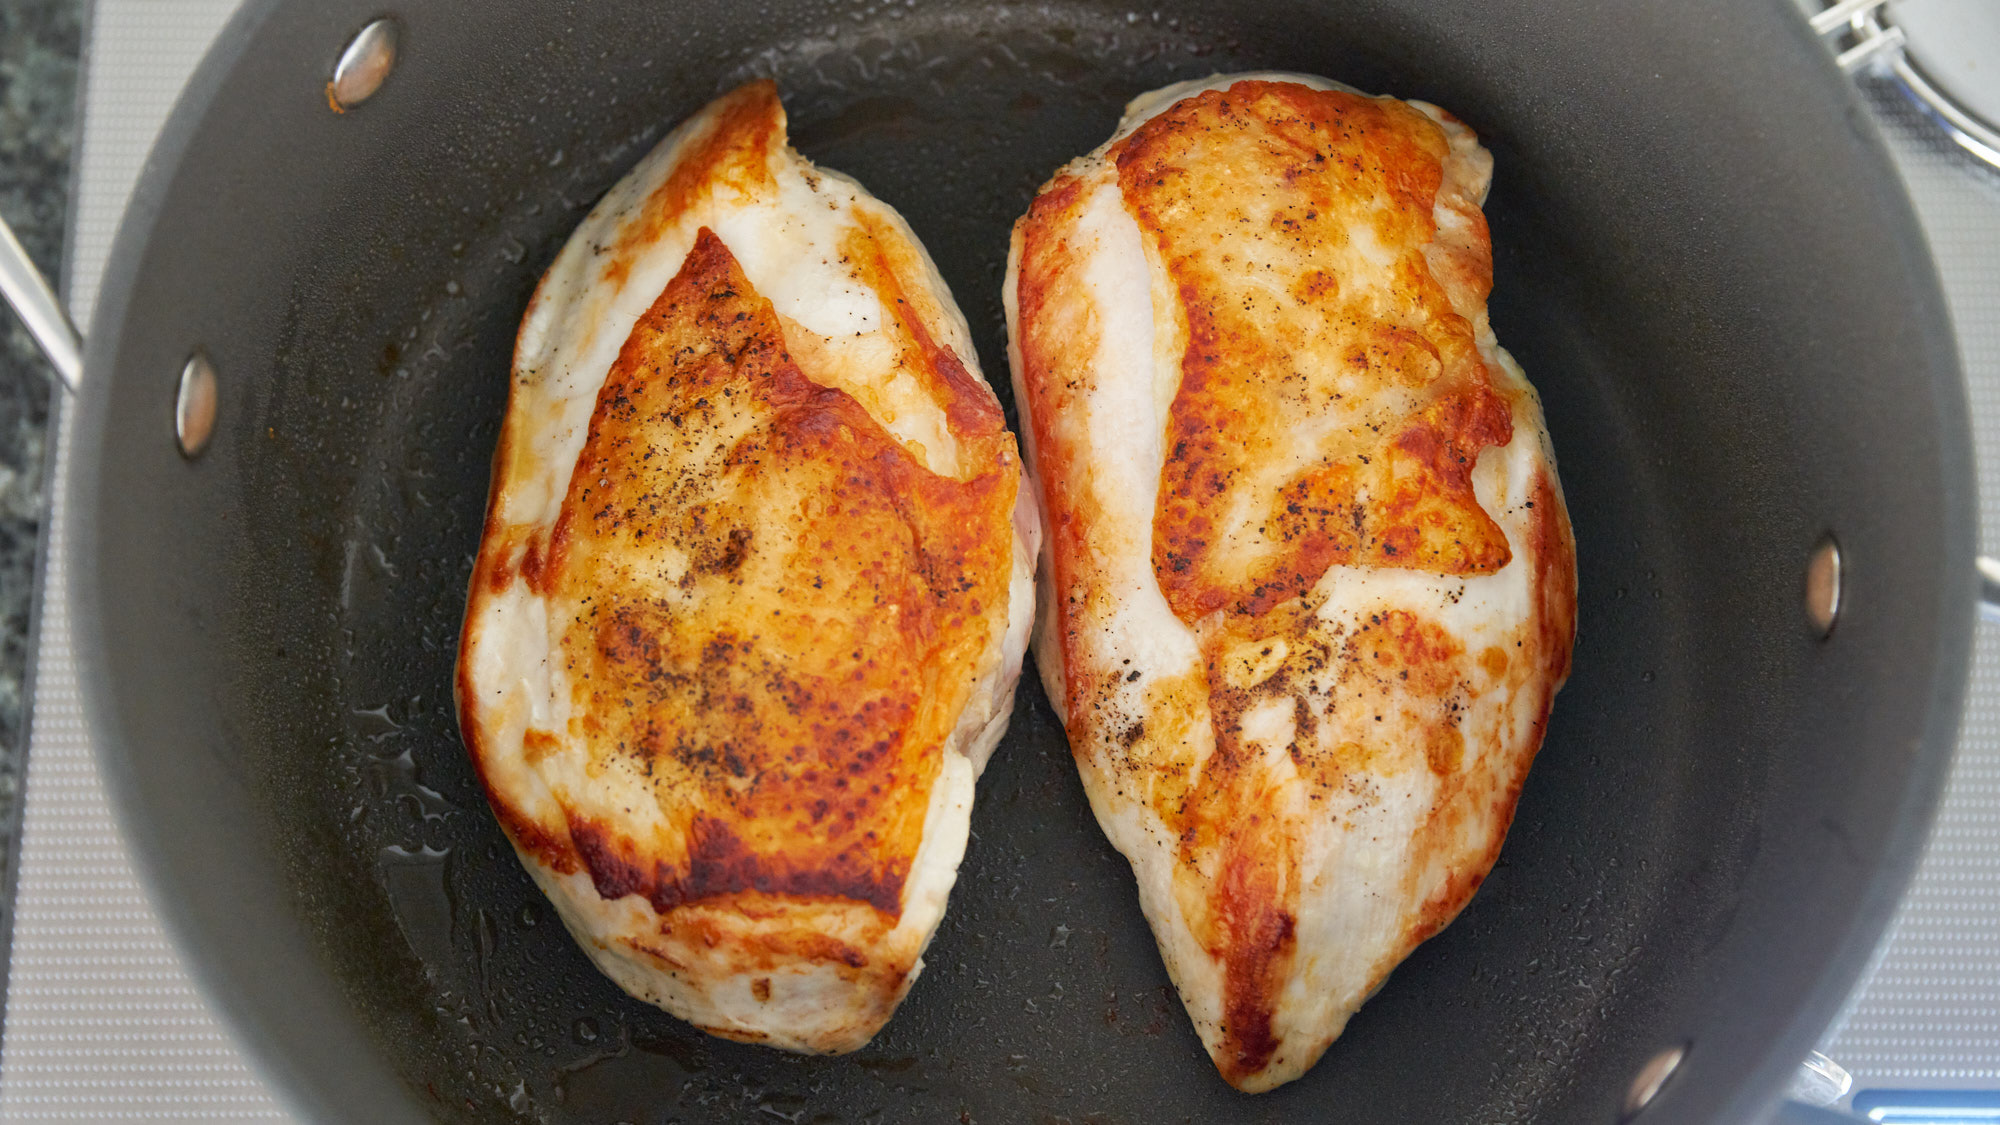 Browm the chicken breasts on both sides for the chicken chili.